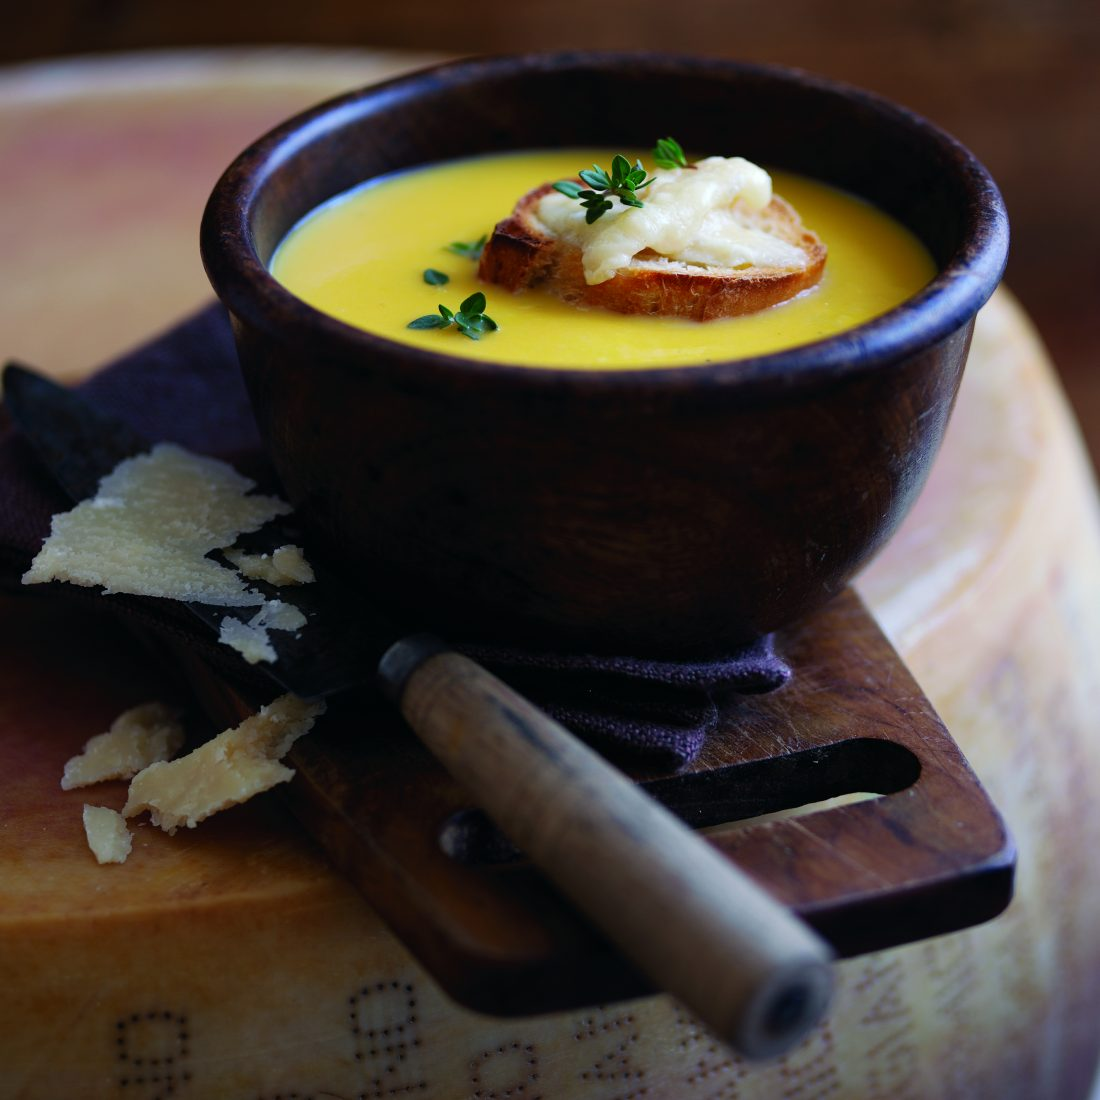 Dishes of the week: Three recipes to use up your pumpkin this Halloween